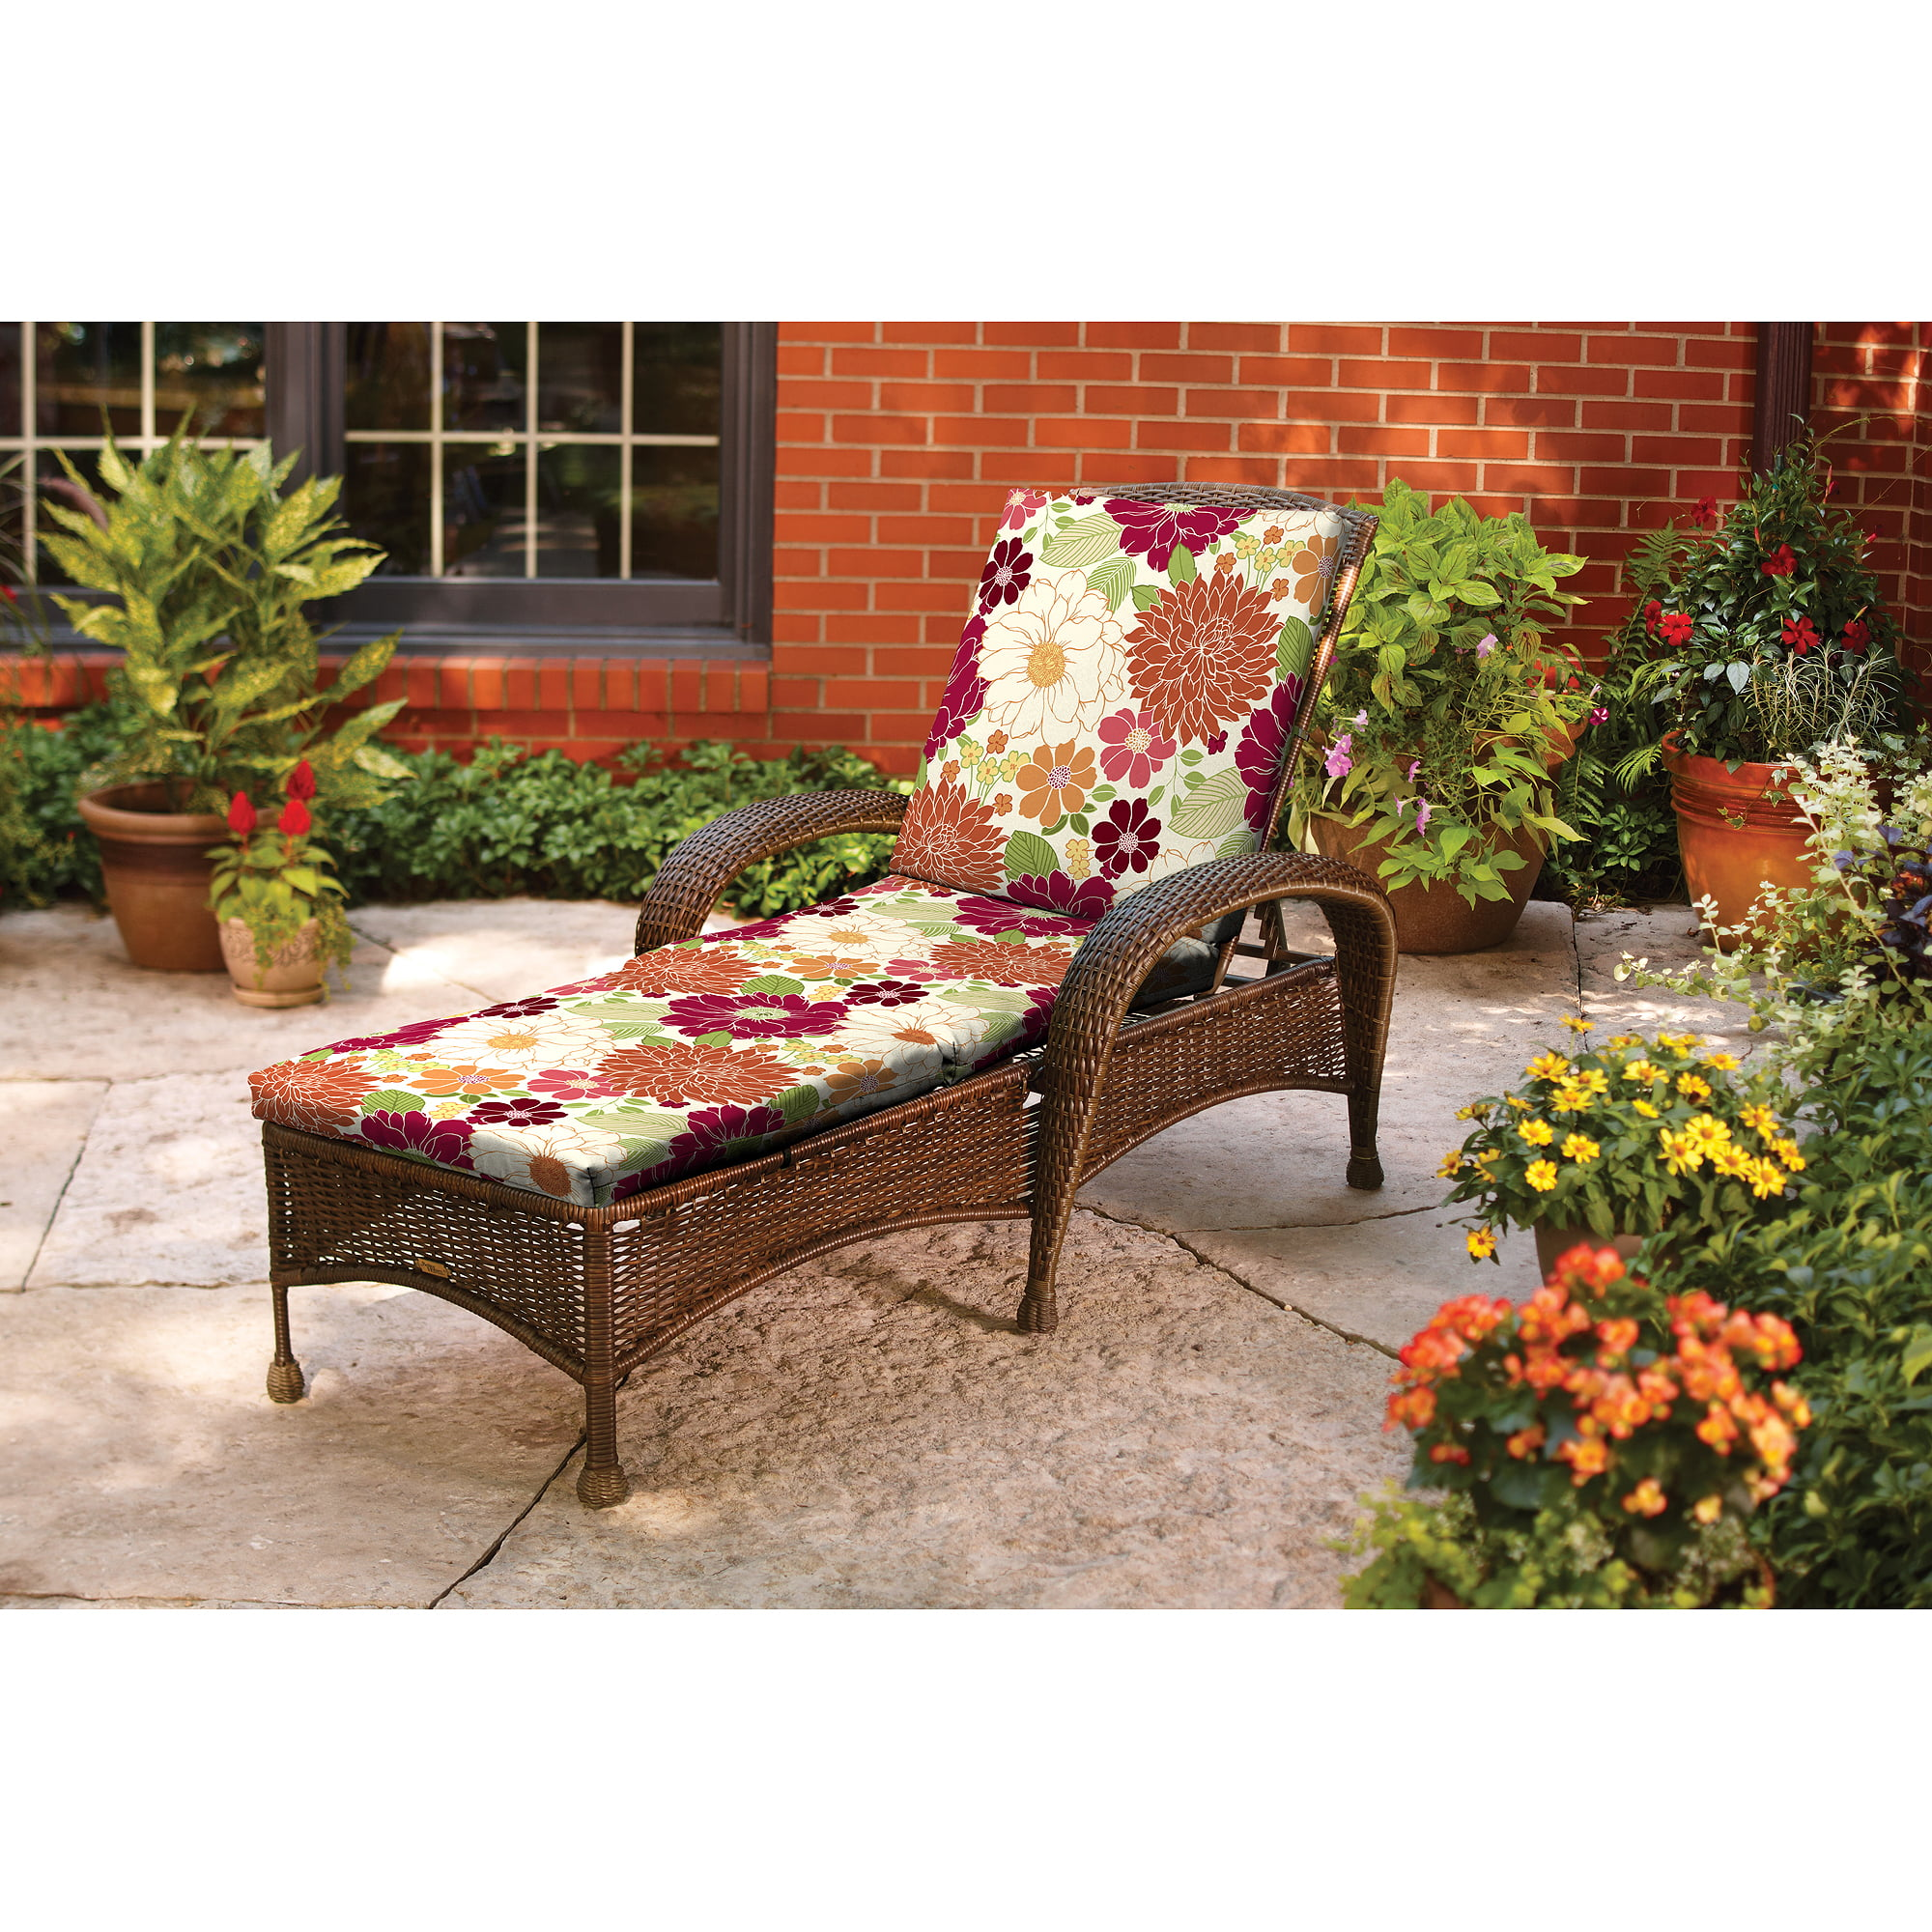 Better homes and gardens azalea ridge chaise lounge Better homes and gardens seat cushions